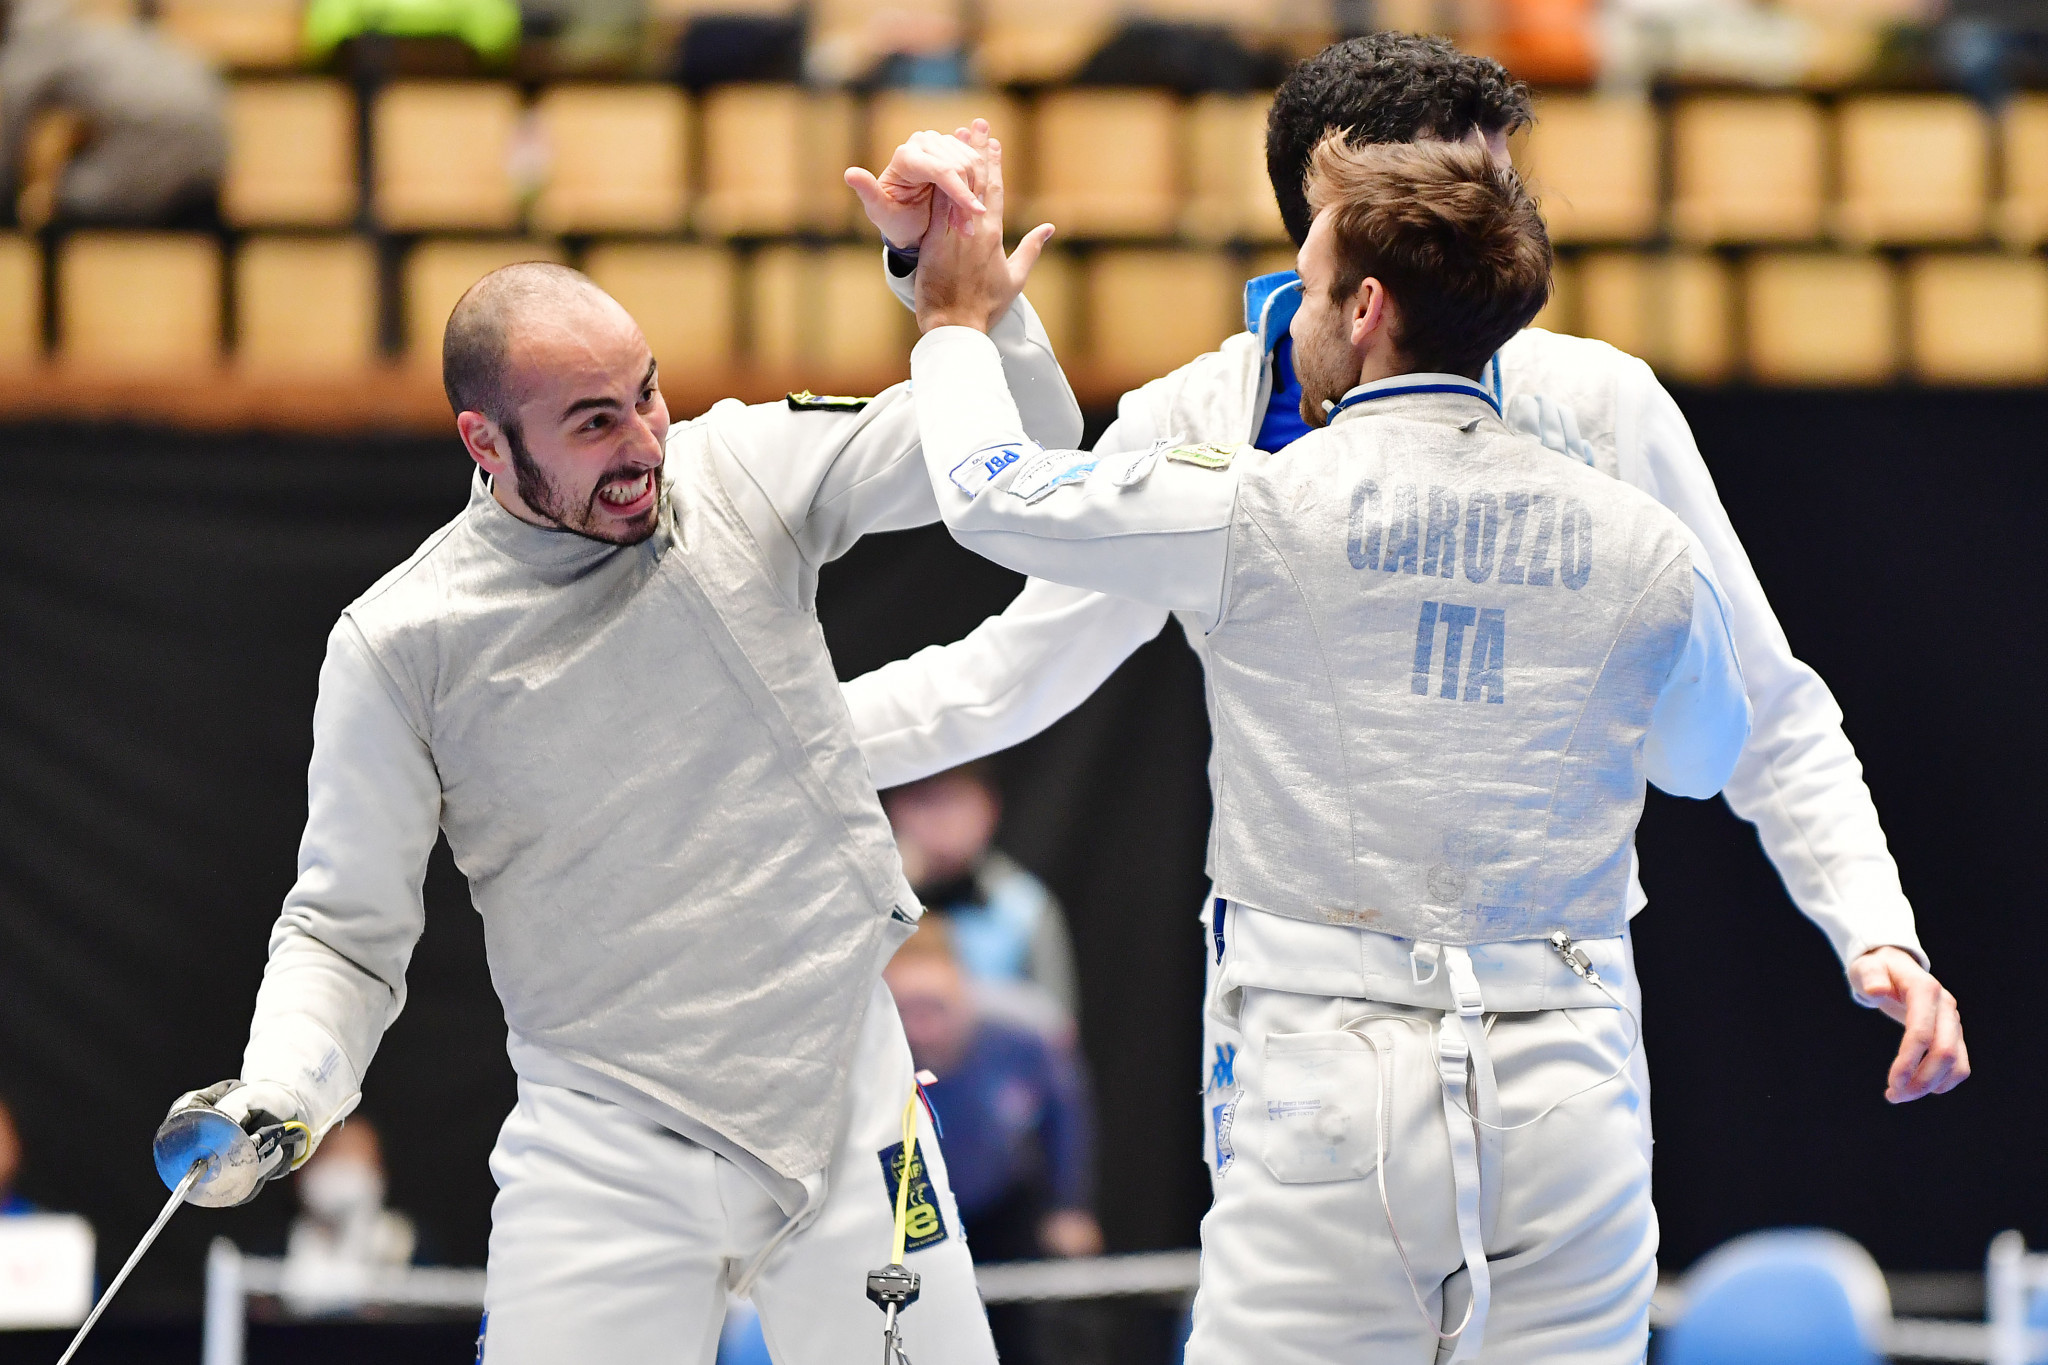 Italy triumph in team event at FIE Sabre World Cup in Madrid